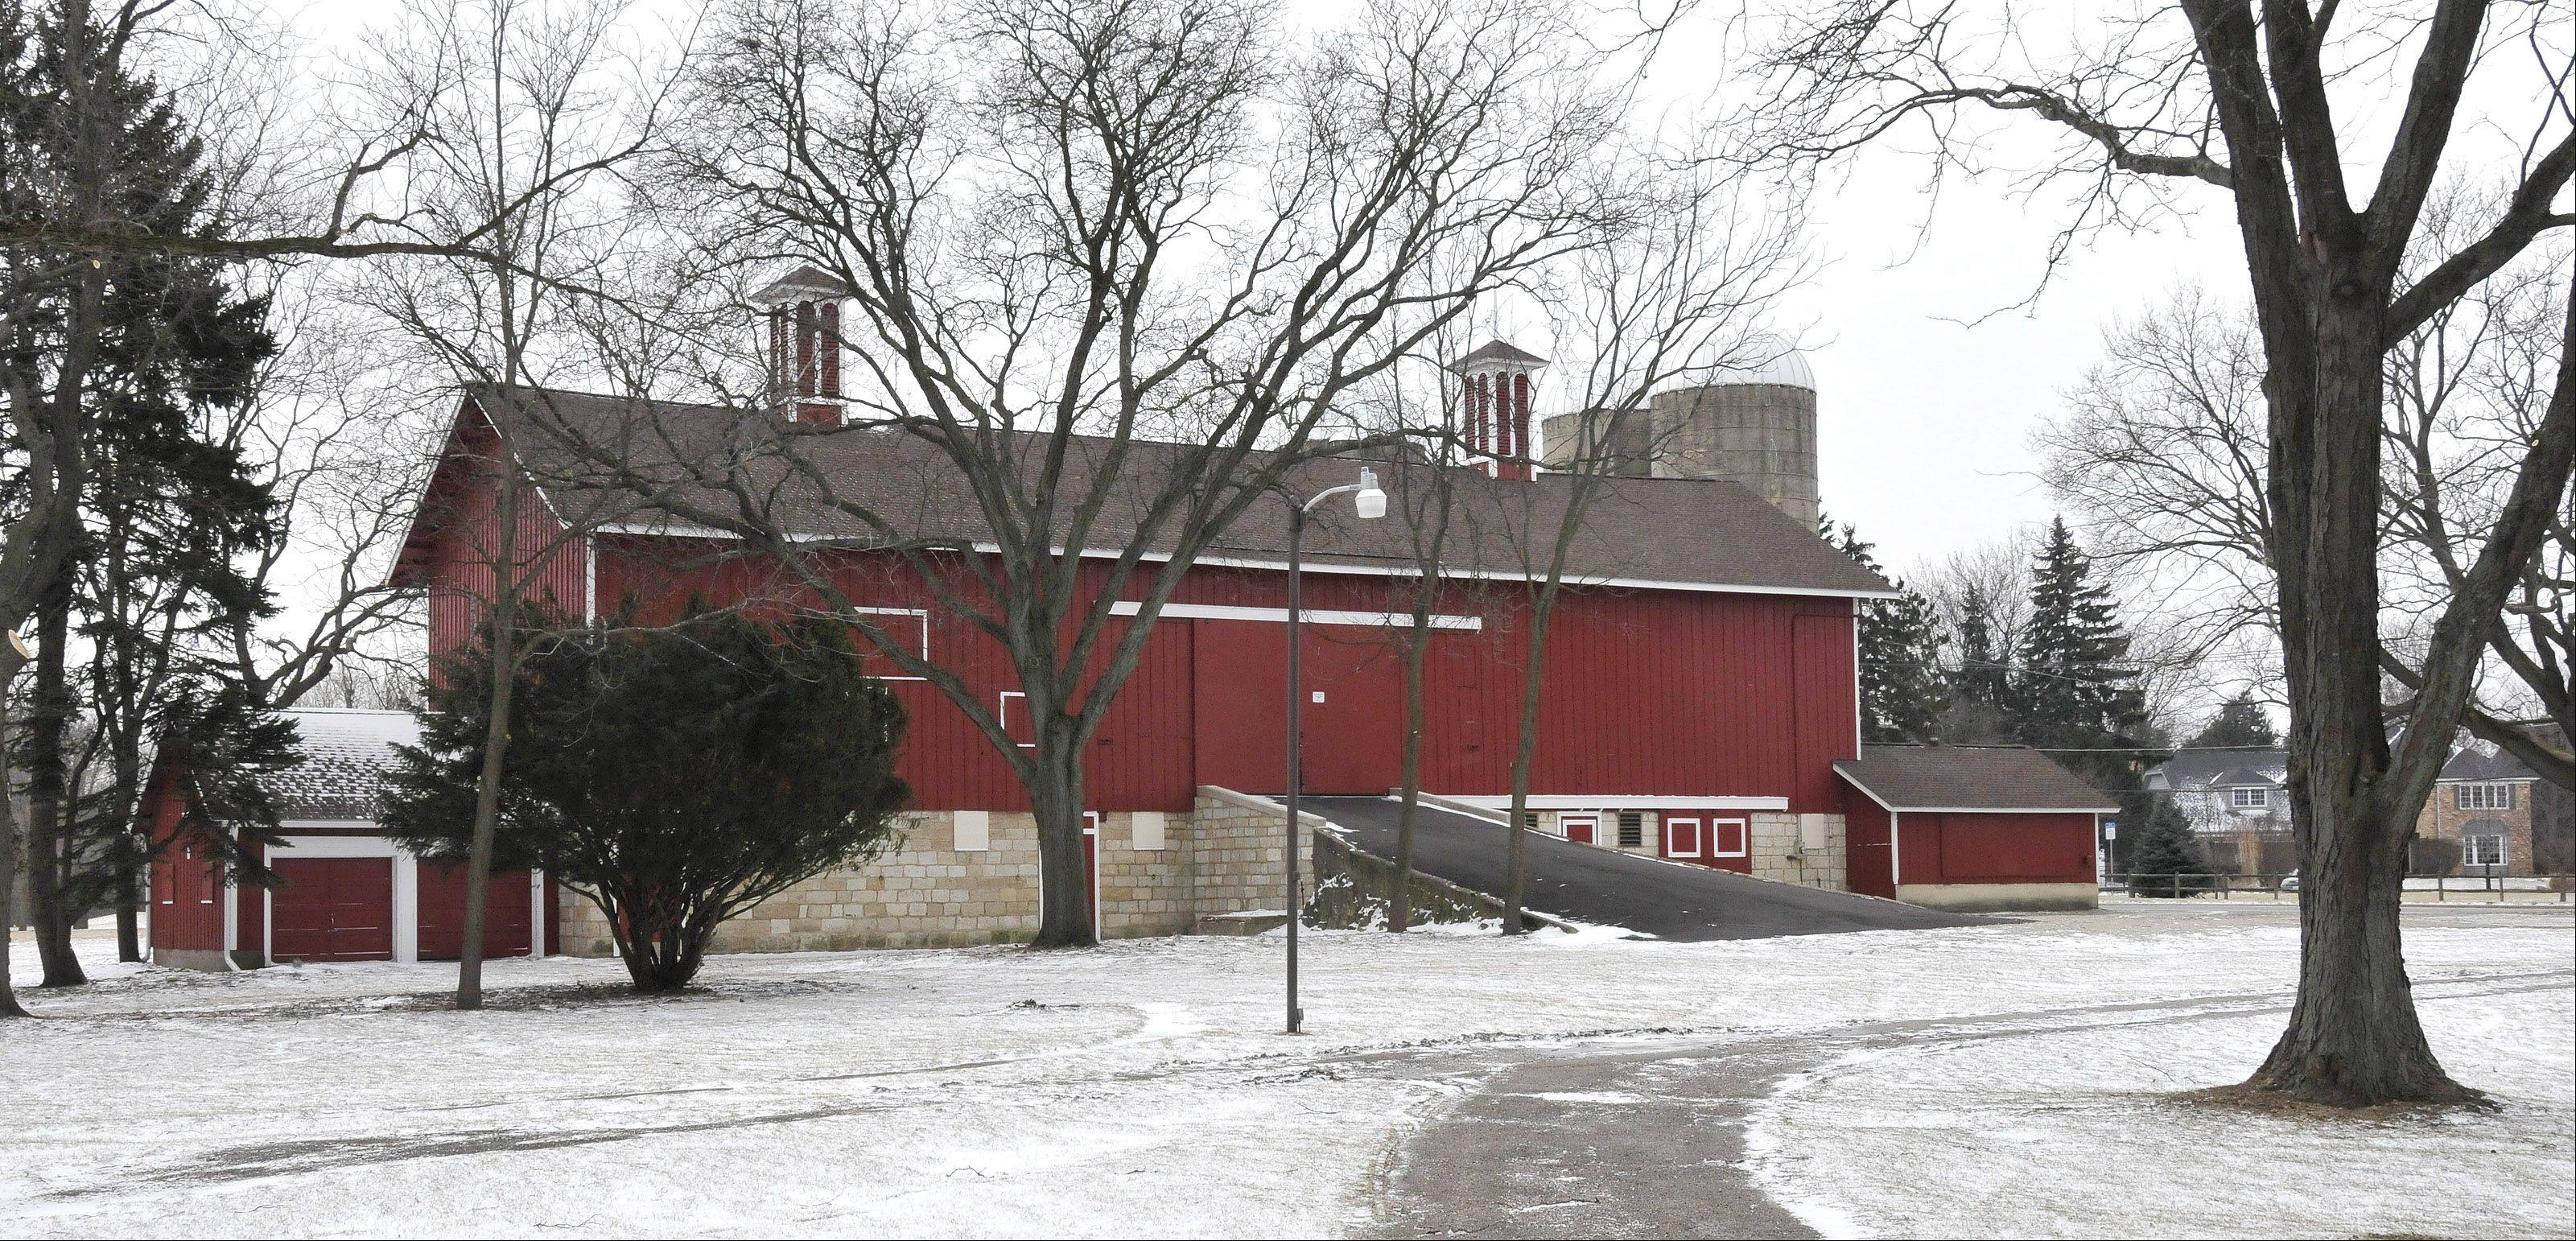 Greene Barn: Once the largest barn in DuPage, the L-shaped structure included a corn crib, wagon shed, granary and animal pens. Last year, the district completed a $1.4 million stabilization of the barn that replaced rotting timbers with a new steel foundation structure.